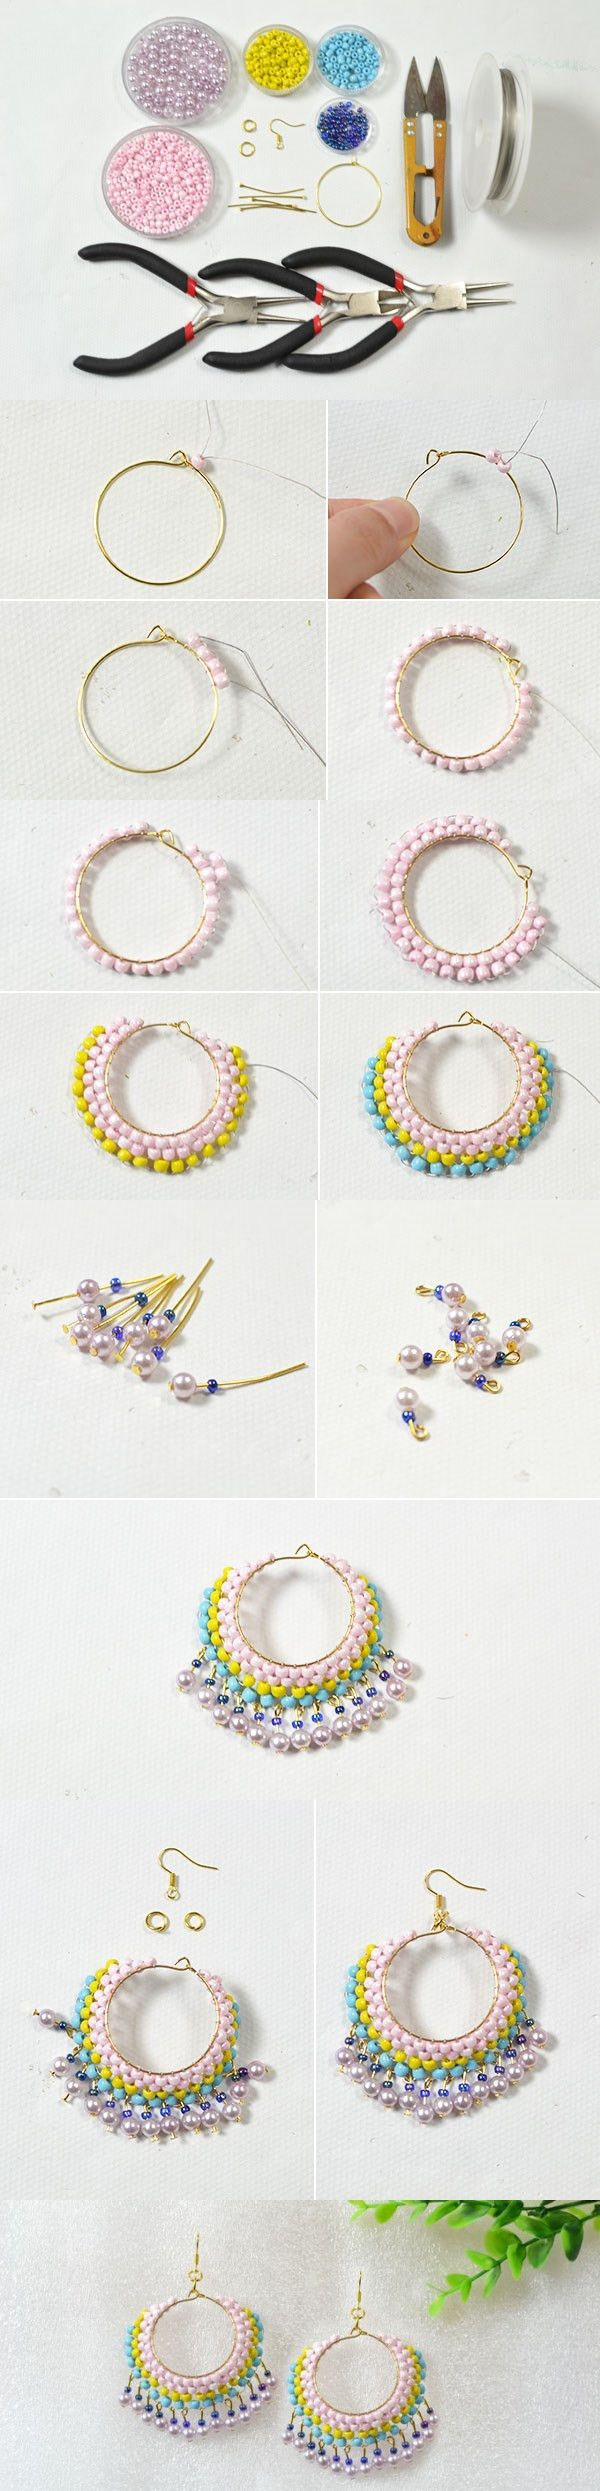 Easy Earring Design for Green Hands – Making Beaded Multi Color Hoop Earrings At Home from LC.Pandahall.com